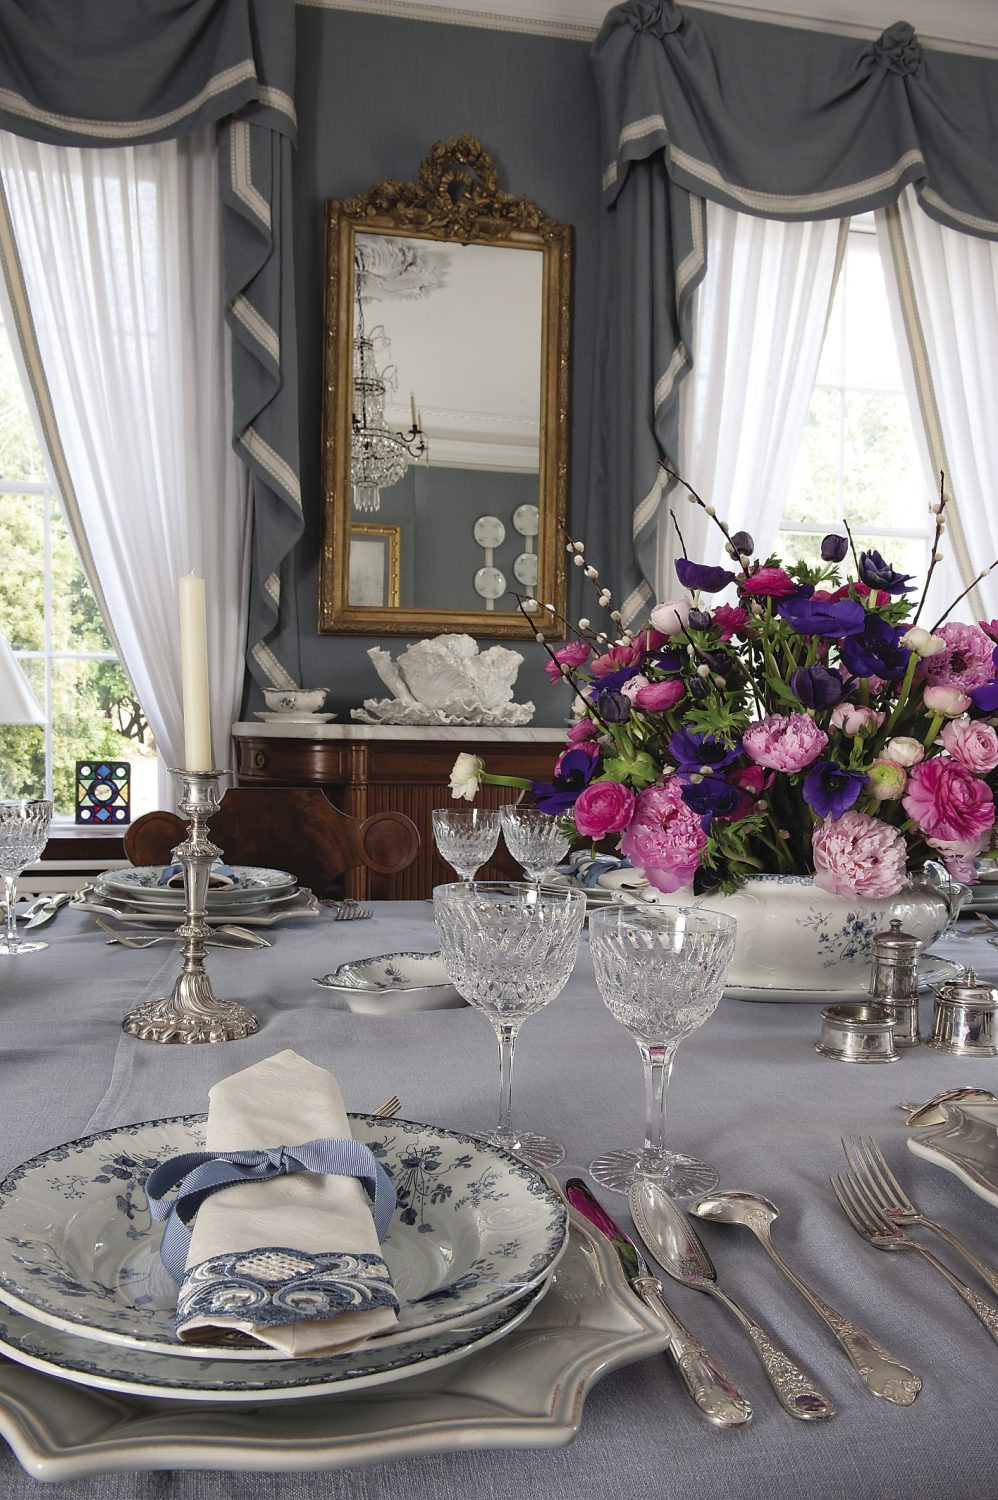 The dining chairs are genuine Gustavian antiques that Theodora bought at Christie's in London